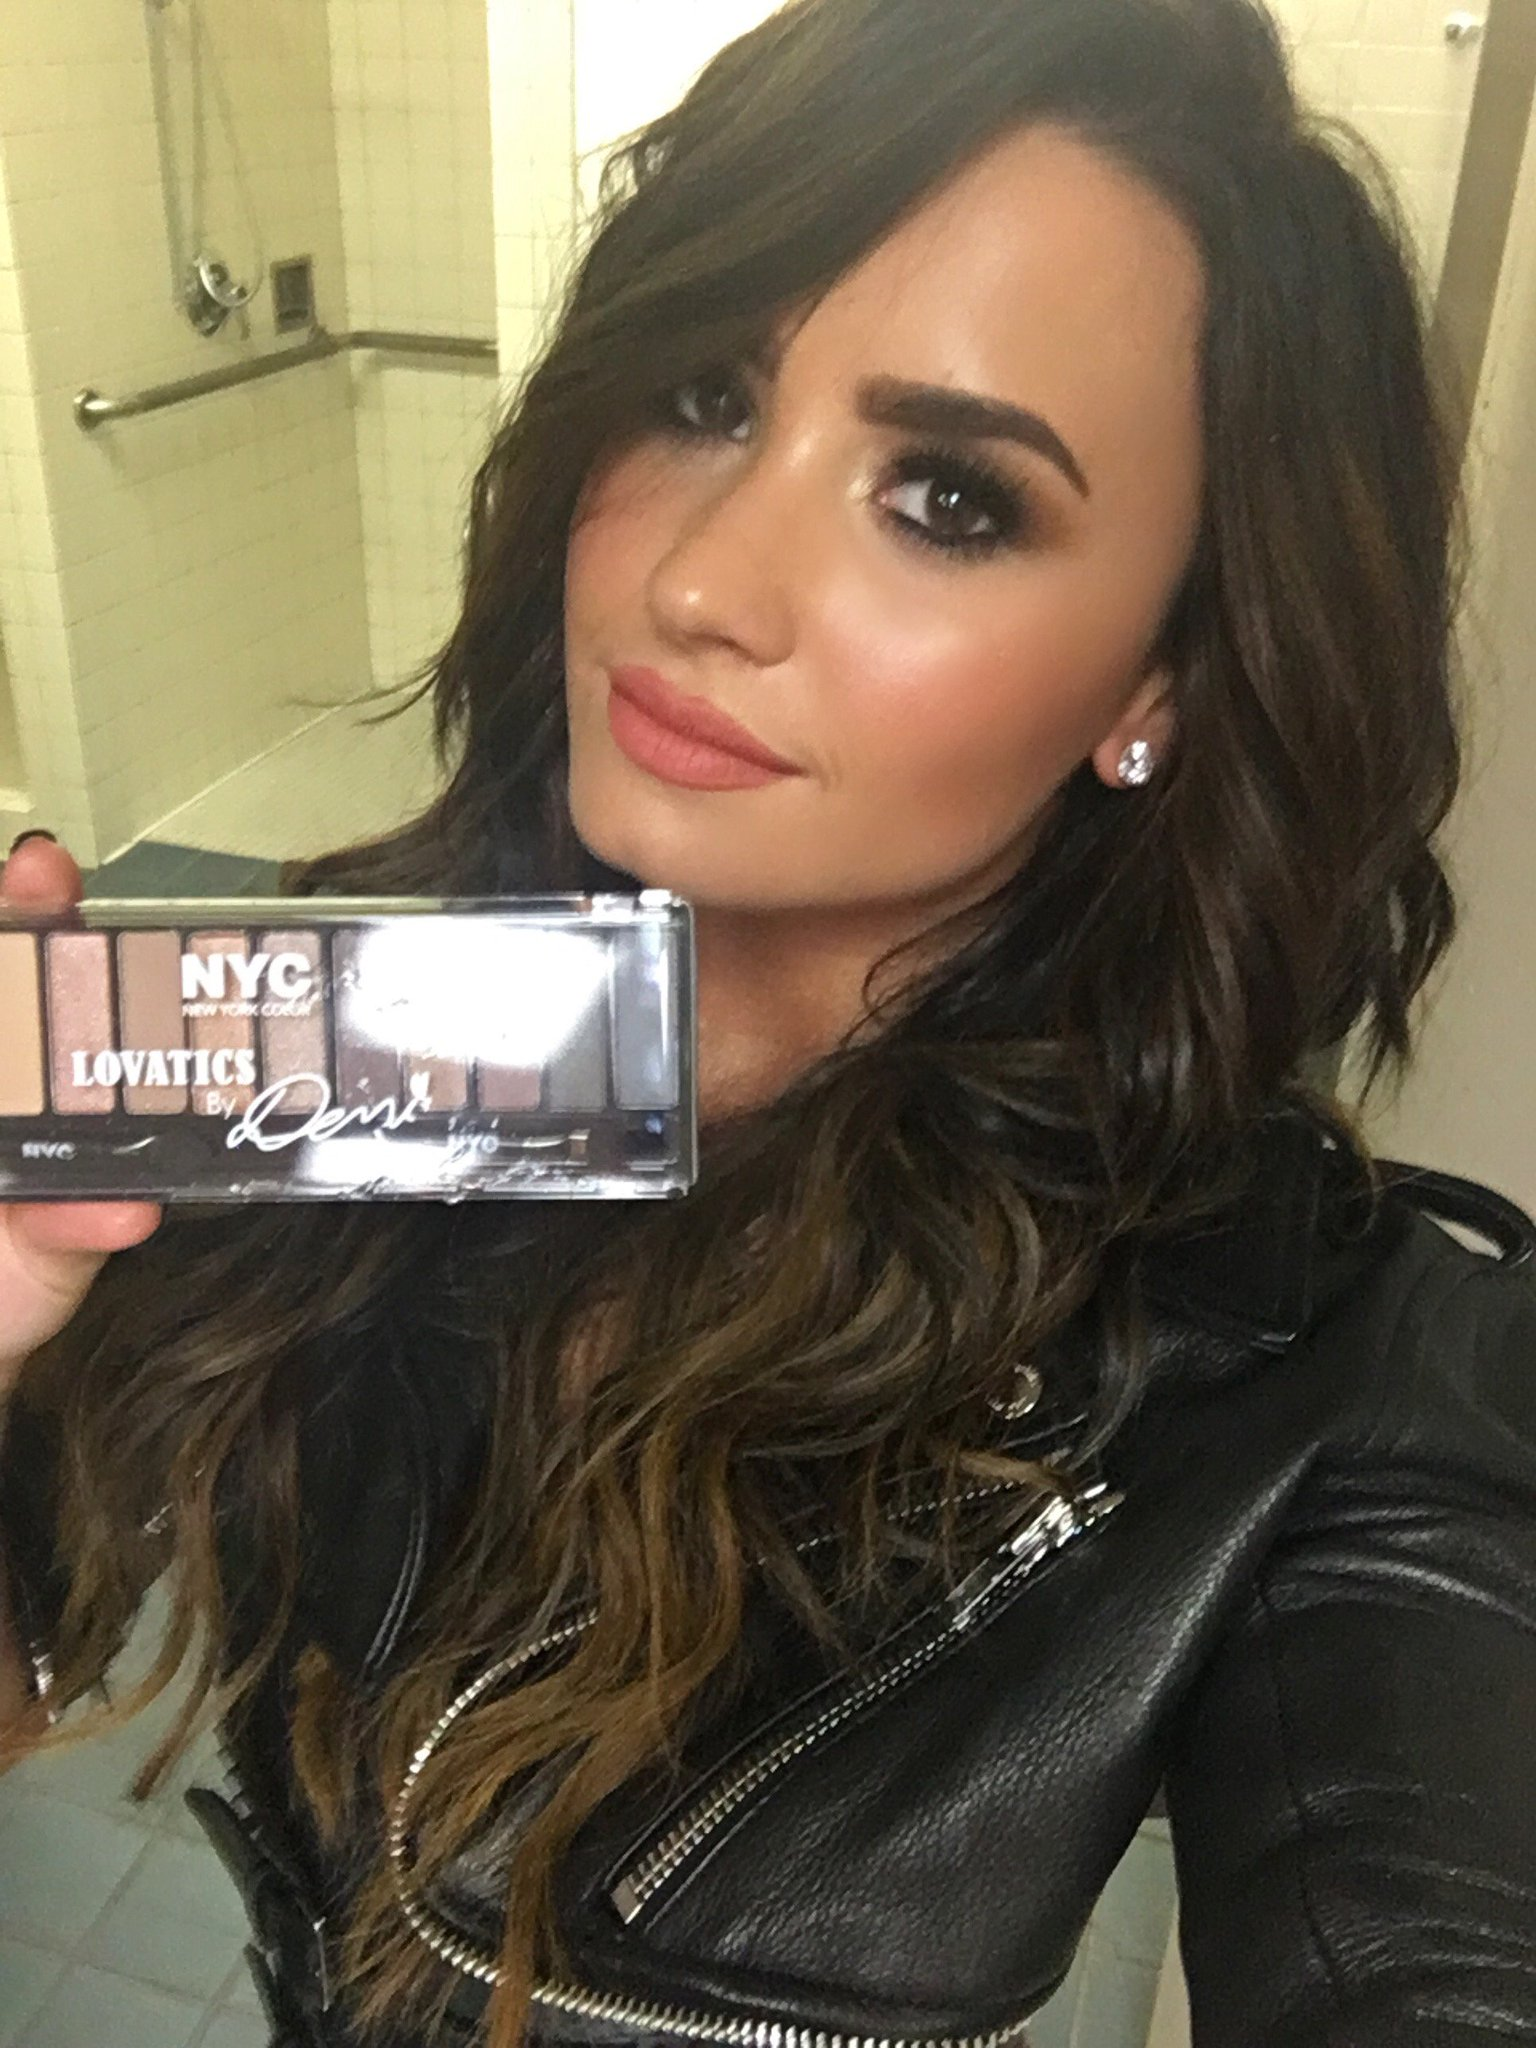 From natural to dramatic you can create your own look with my #Lovatics Palette. Get it now at @WalmartCanada! https://t.co/WjsJadIaM3